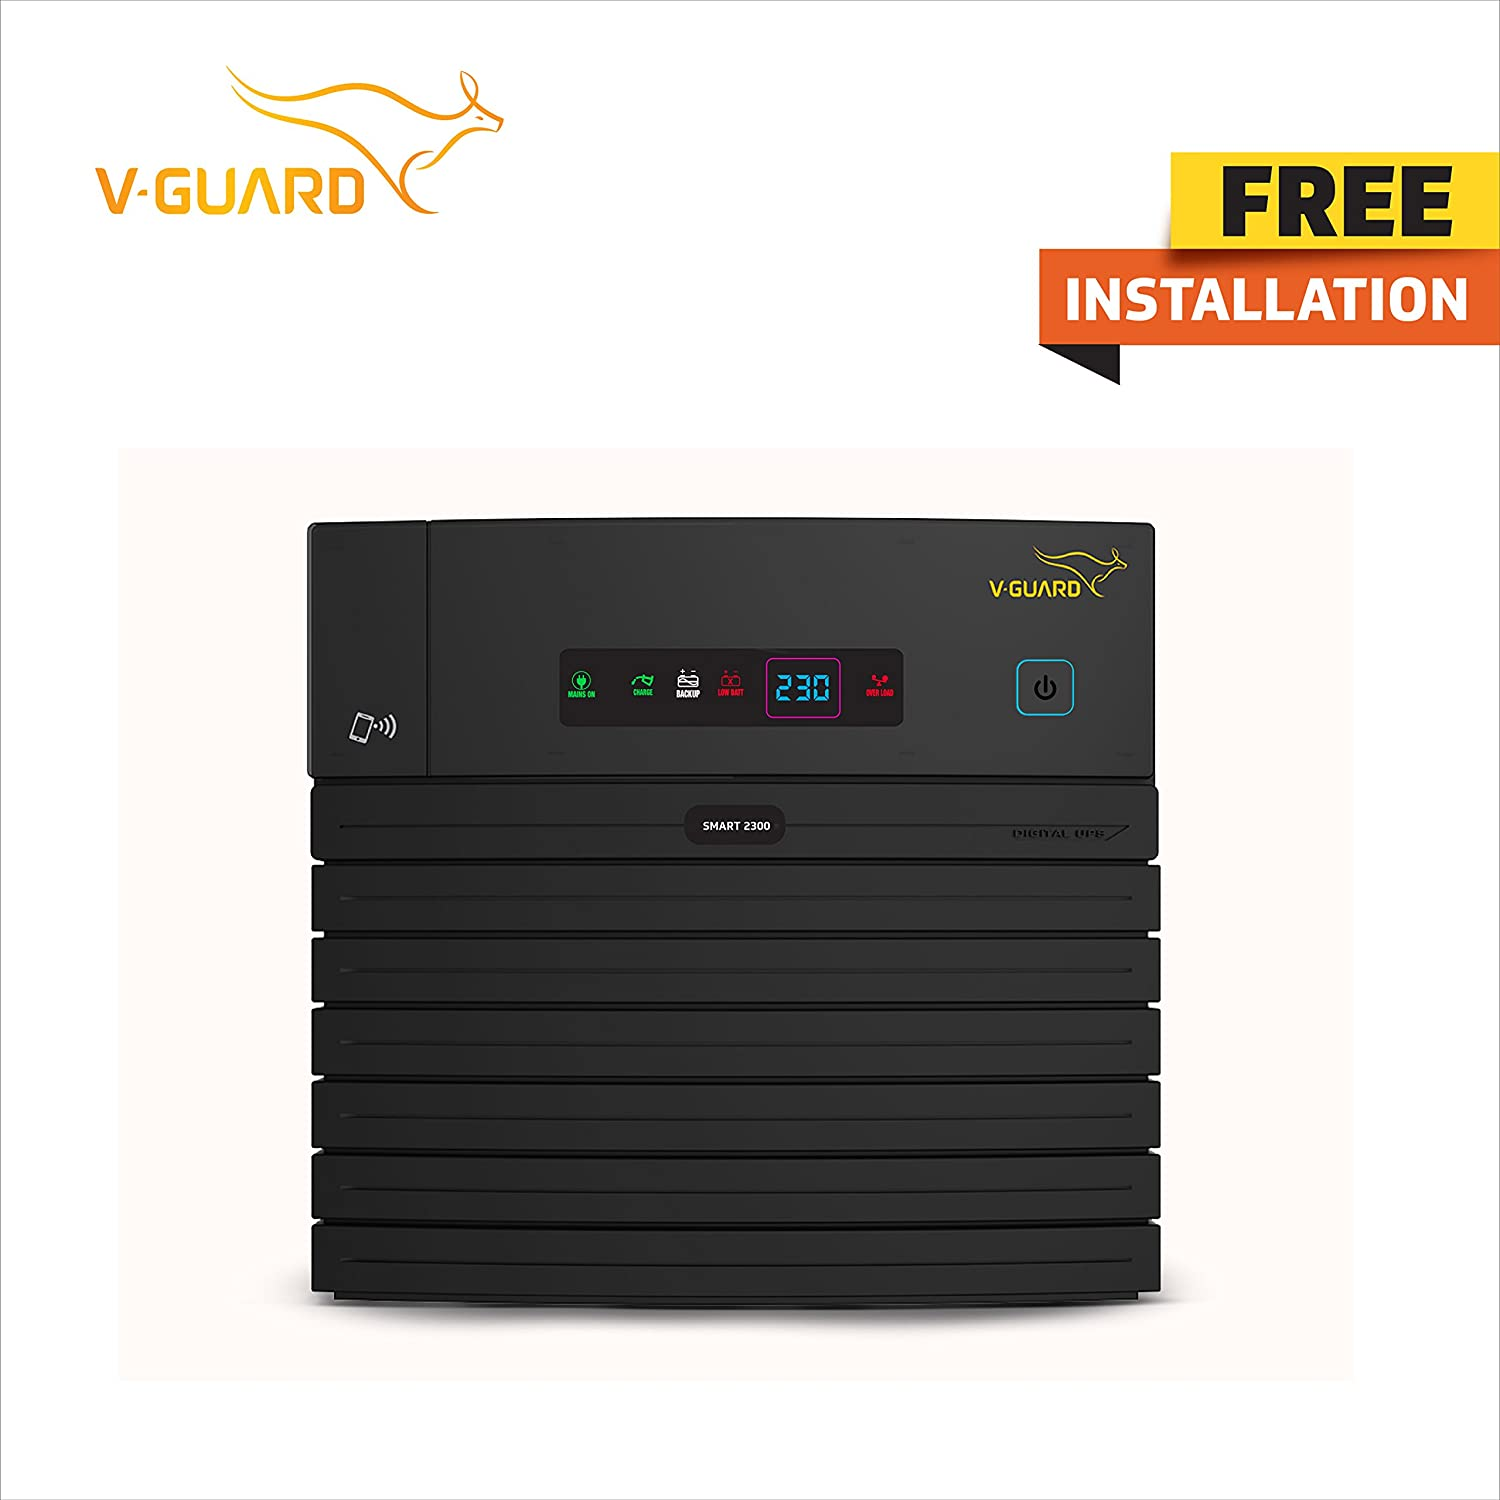 Digital UPS Smart 2300 with Mobile Connectivity and Install